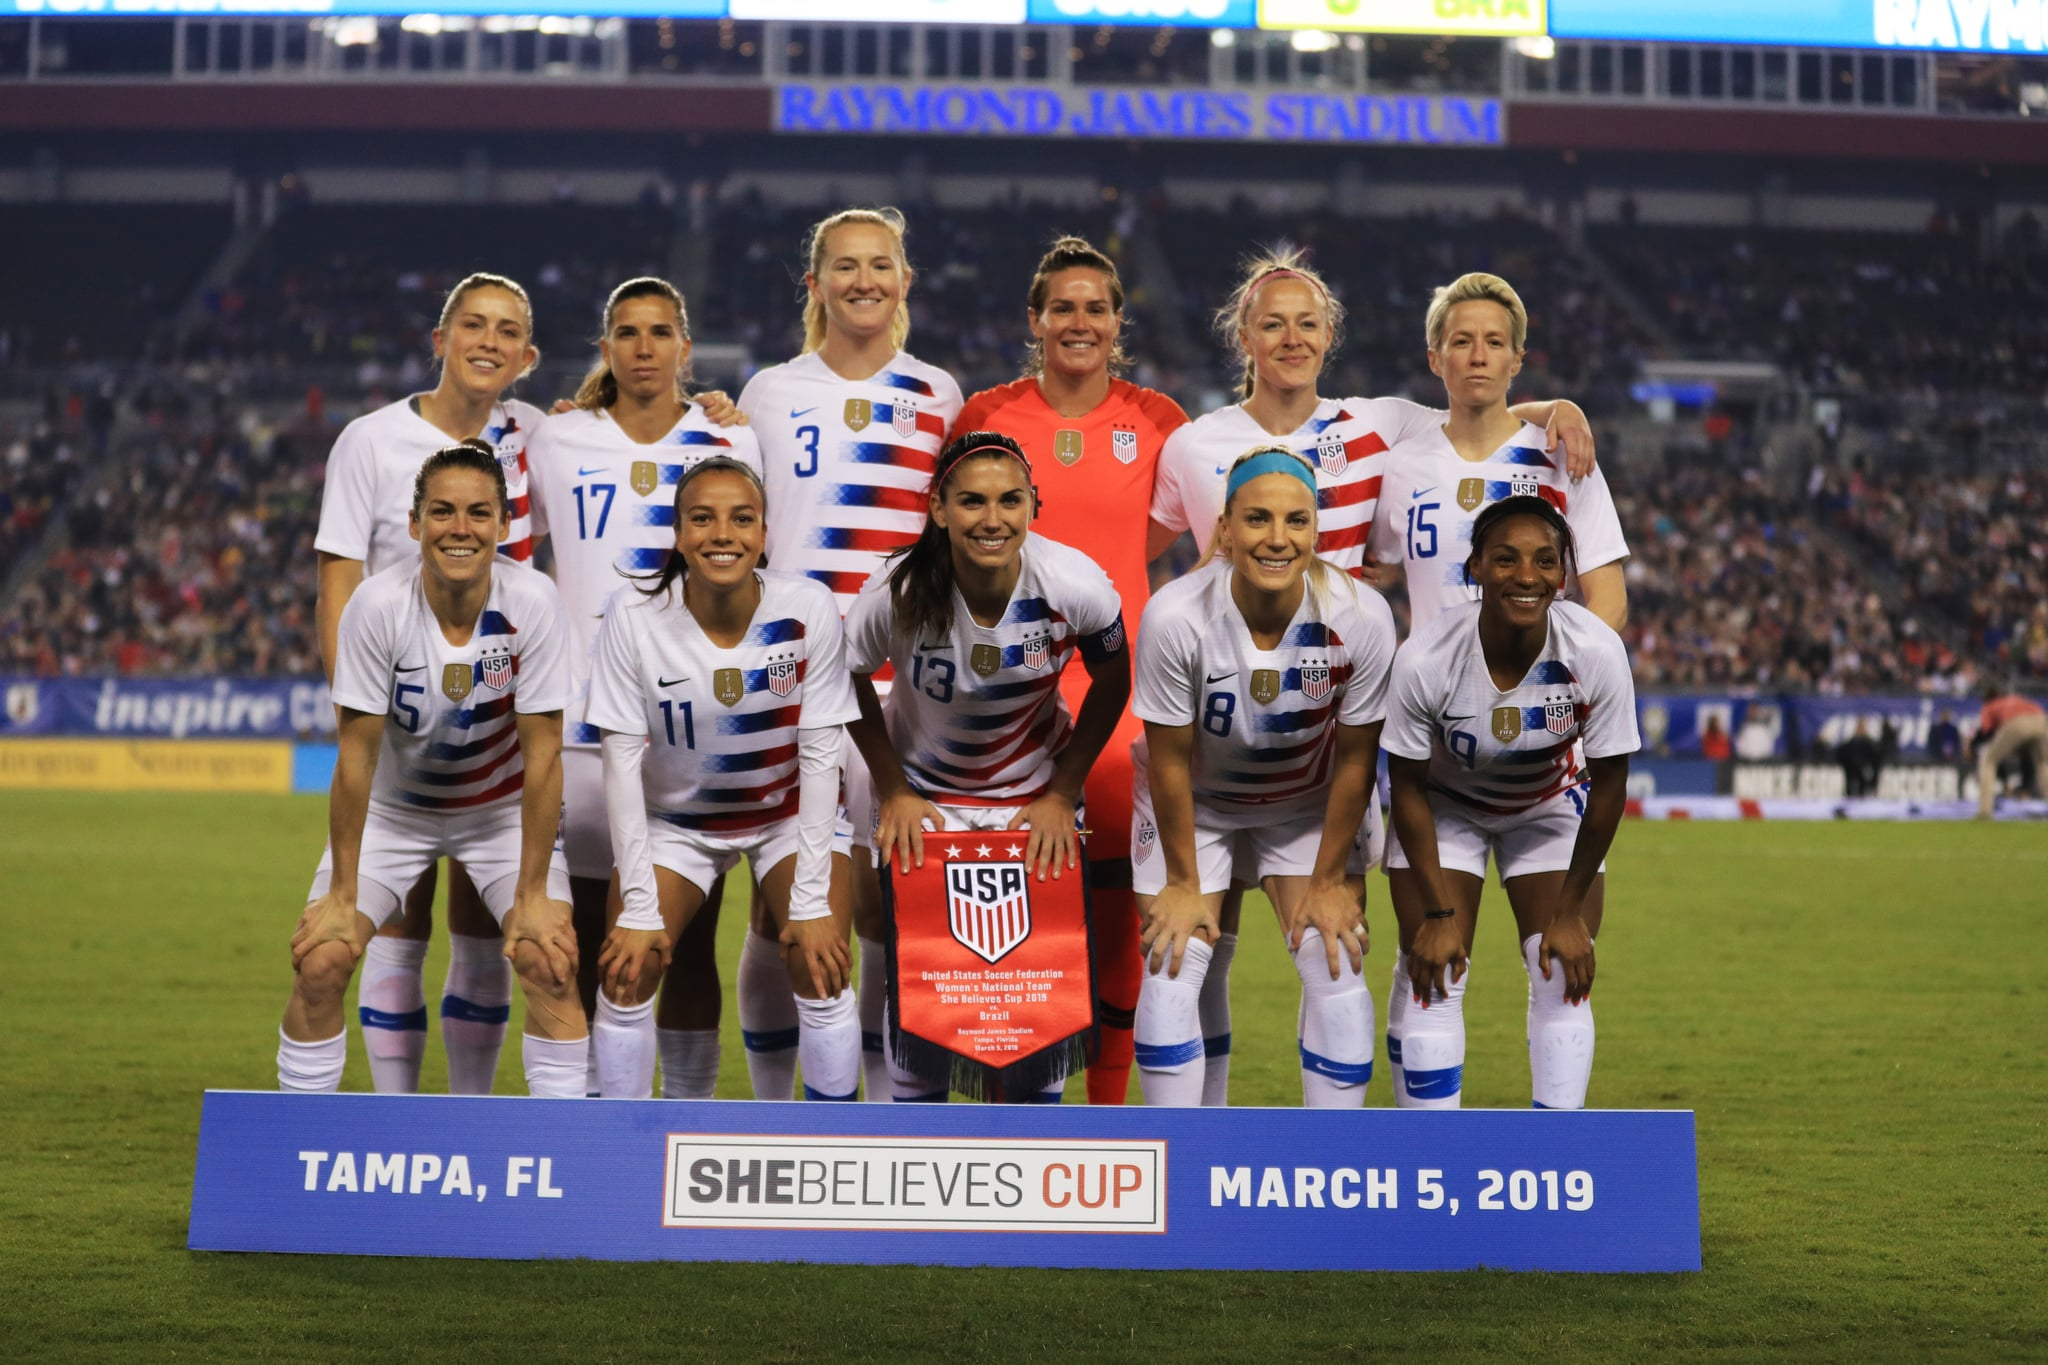 TAMPA, FLORIDA - MARCH 05: The USA Women's National team poses before a game against Brazil during the She Believes Cup at Raymond James Stadium on March 05, 2019 in Tampa, Florida. (Photo by Mike Ehrmann/Getty Images)